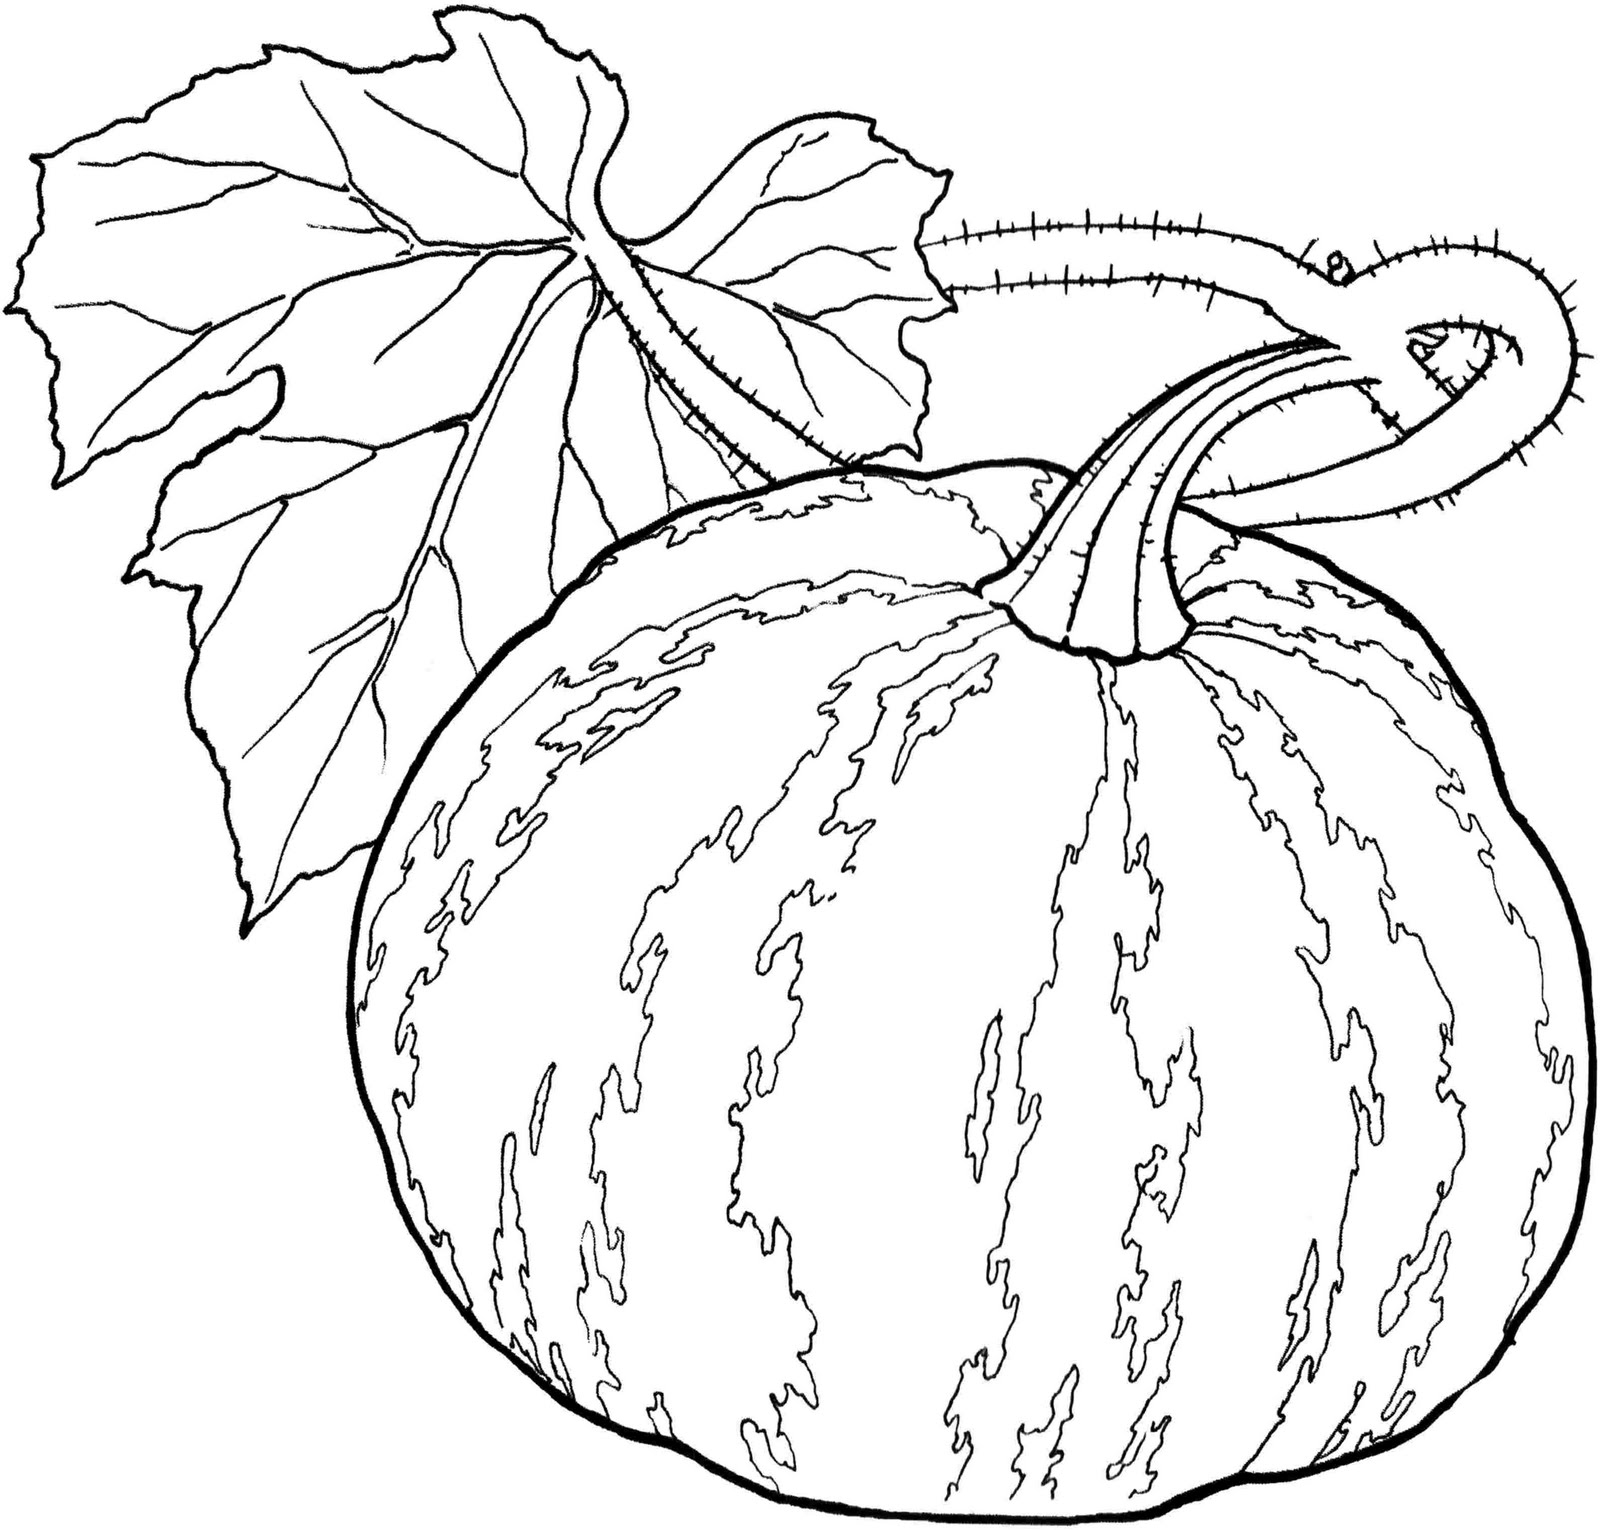 vegetables images for colouring vegetables drawing for kids at getdrawings free download colouring images vegetables for